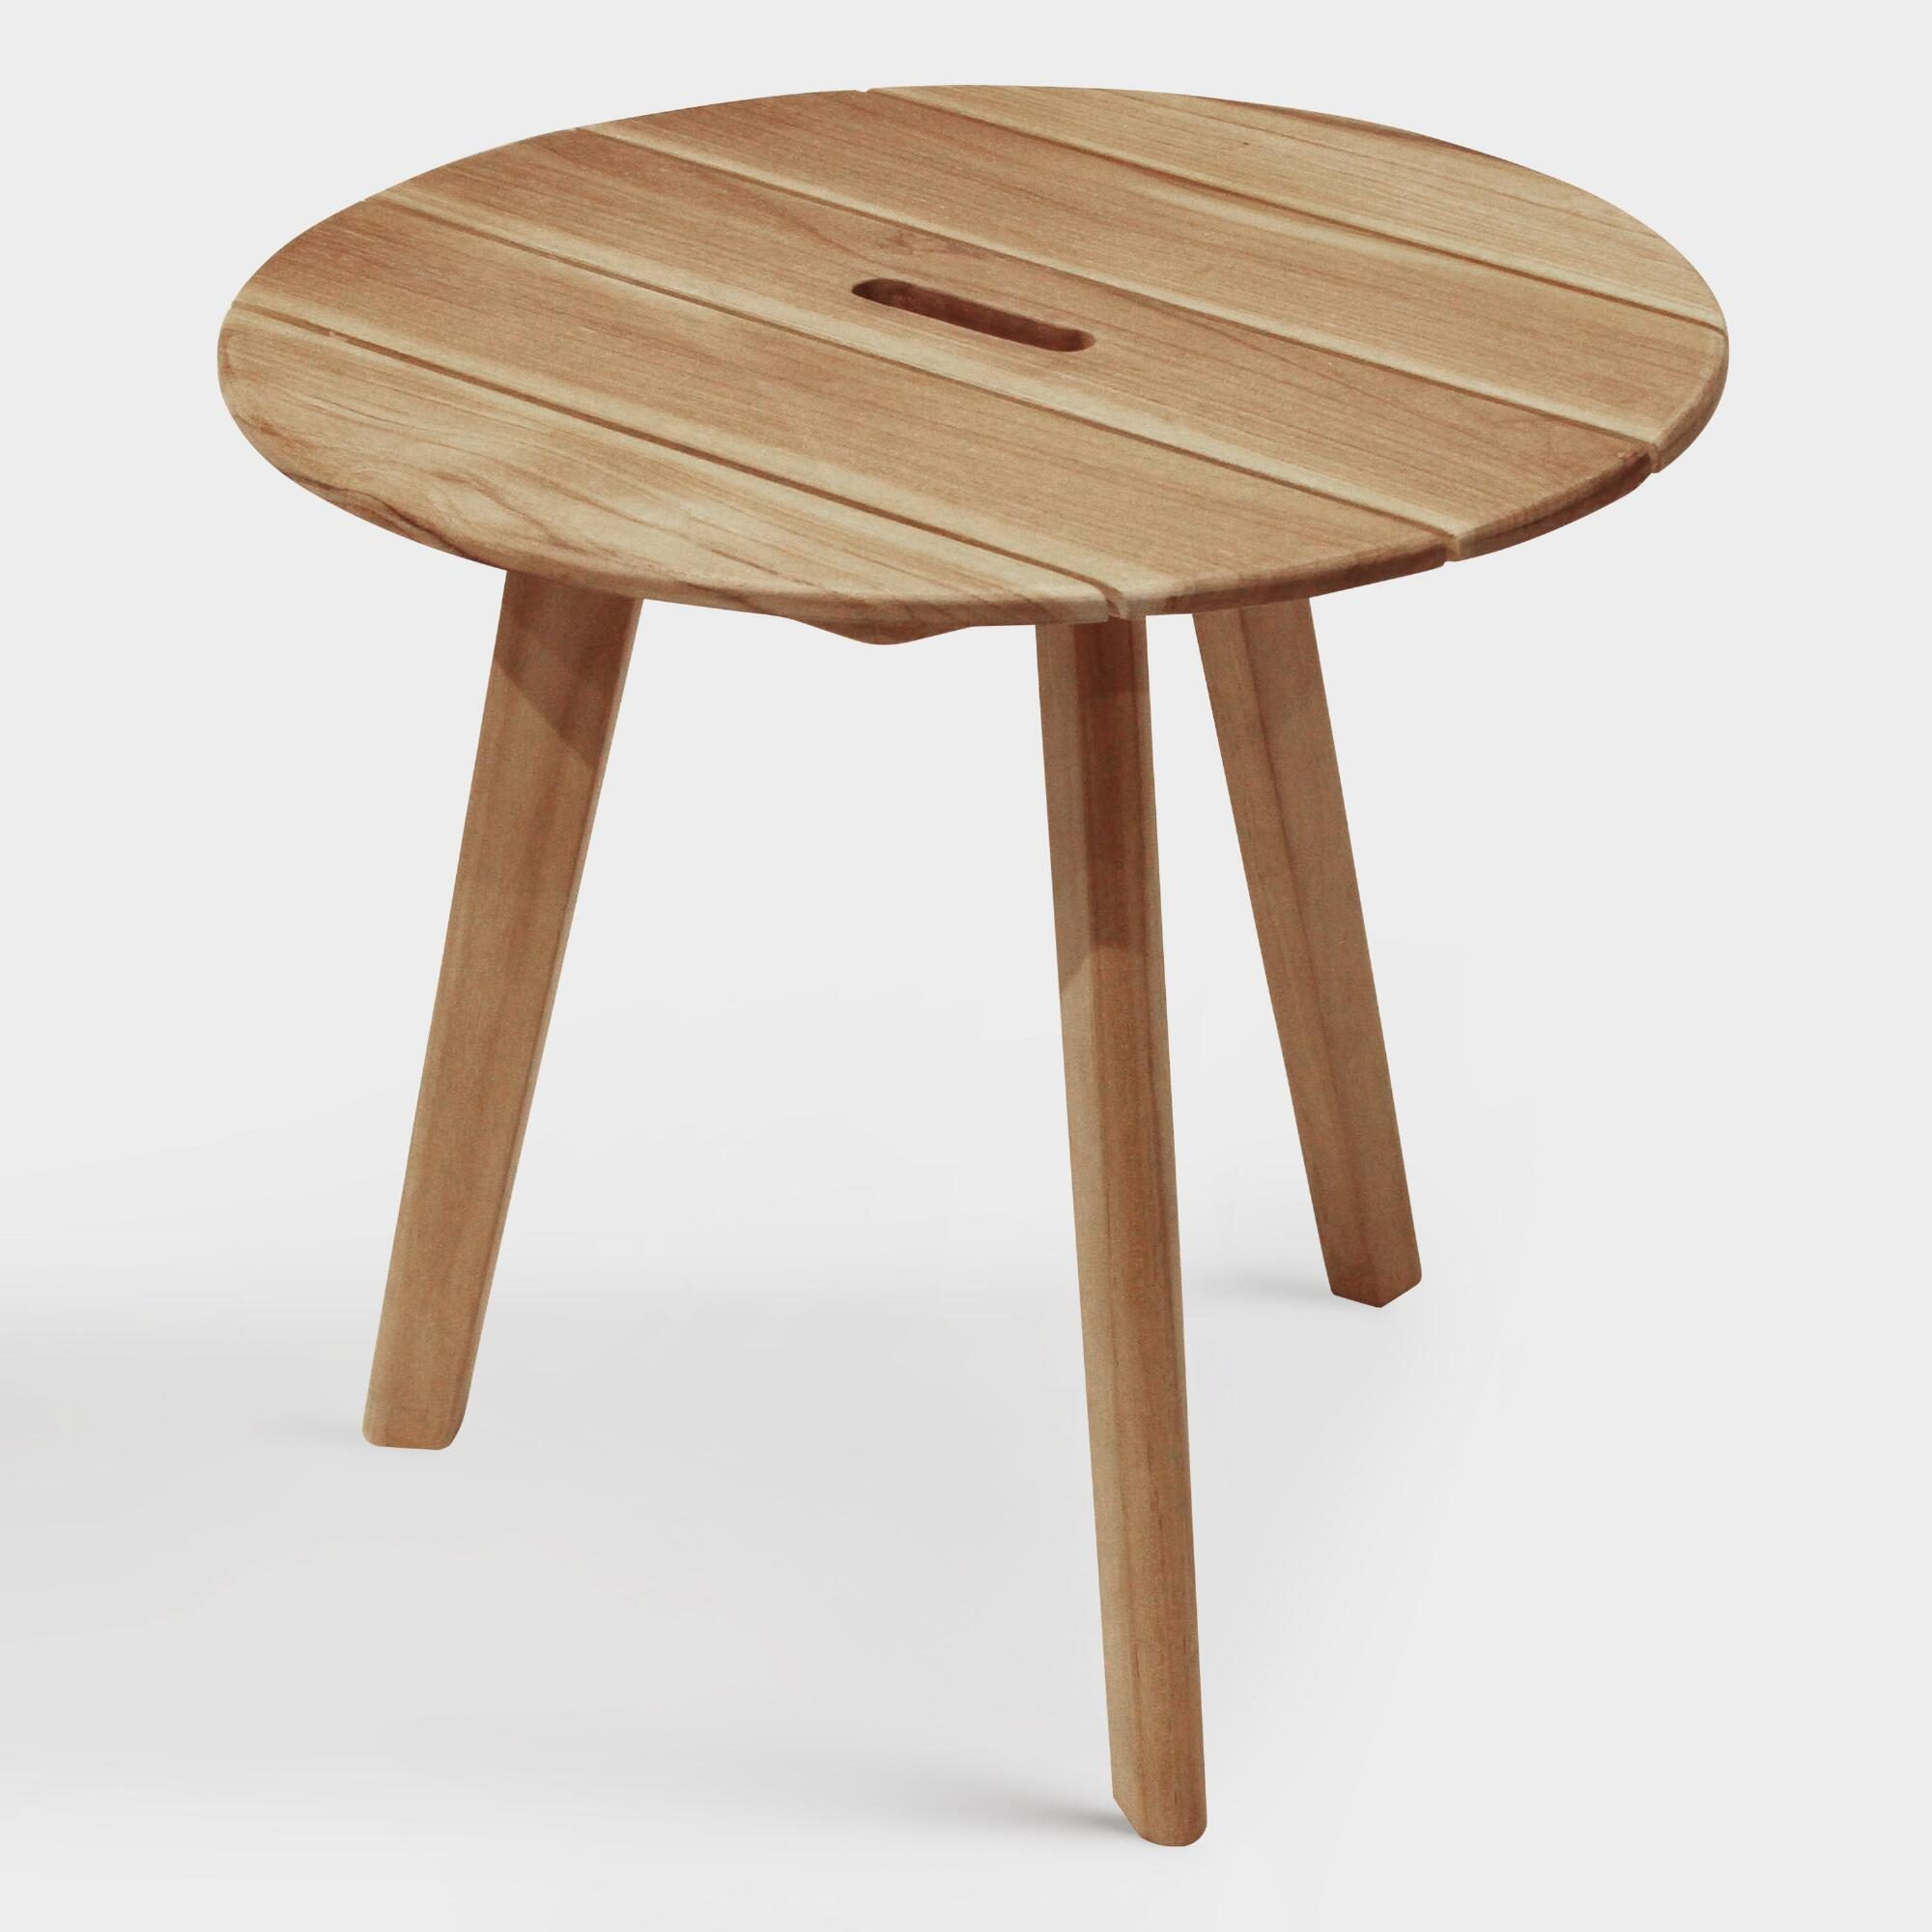 Round Teak Wood Hakui Accent Table by World Market